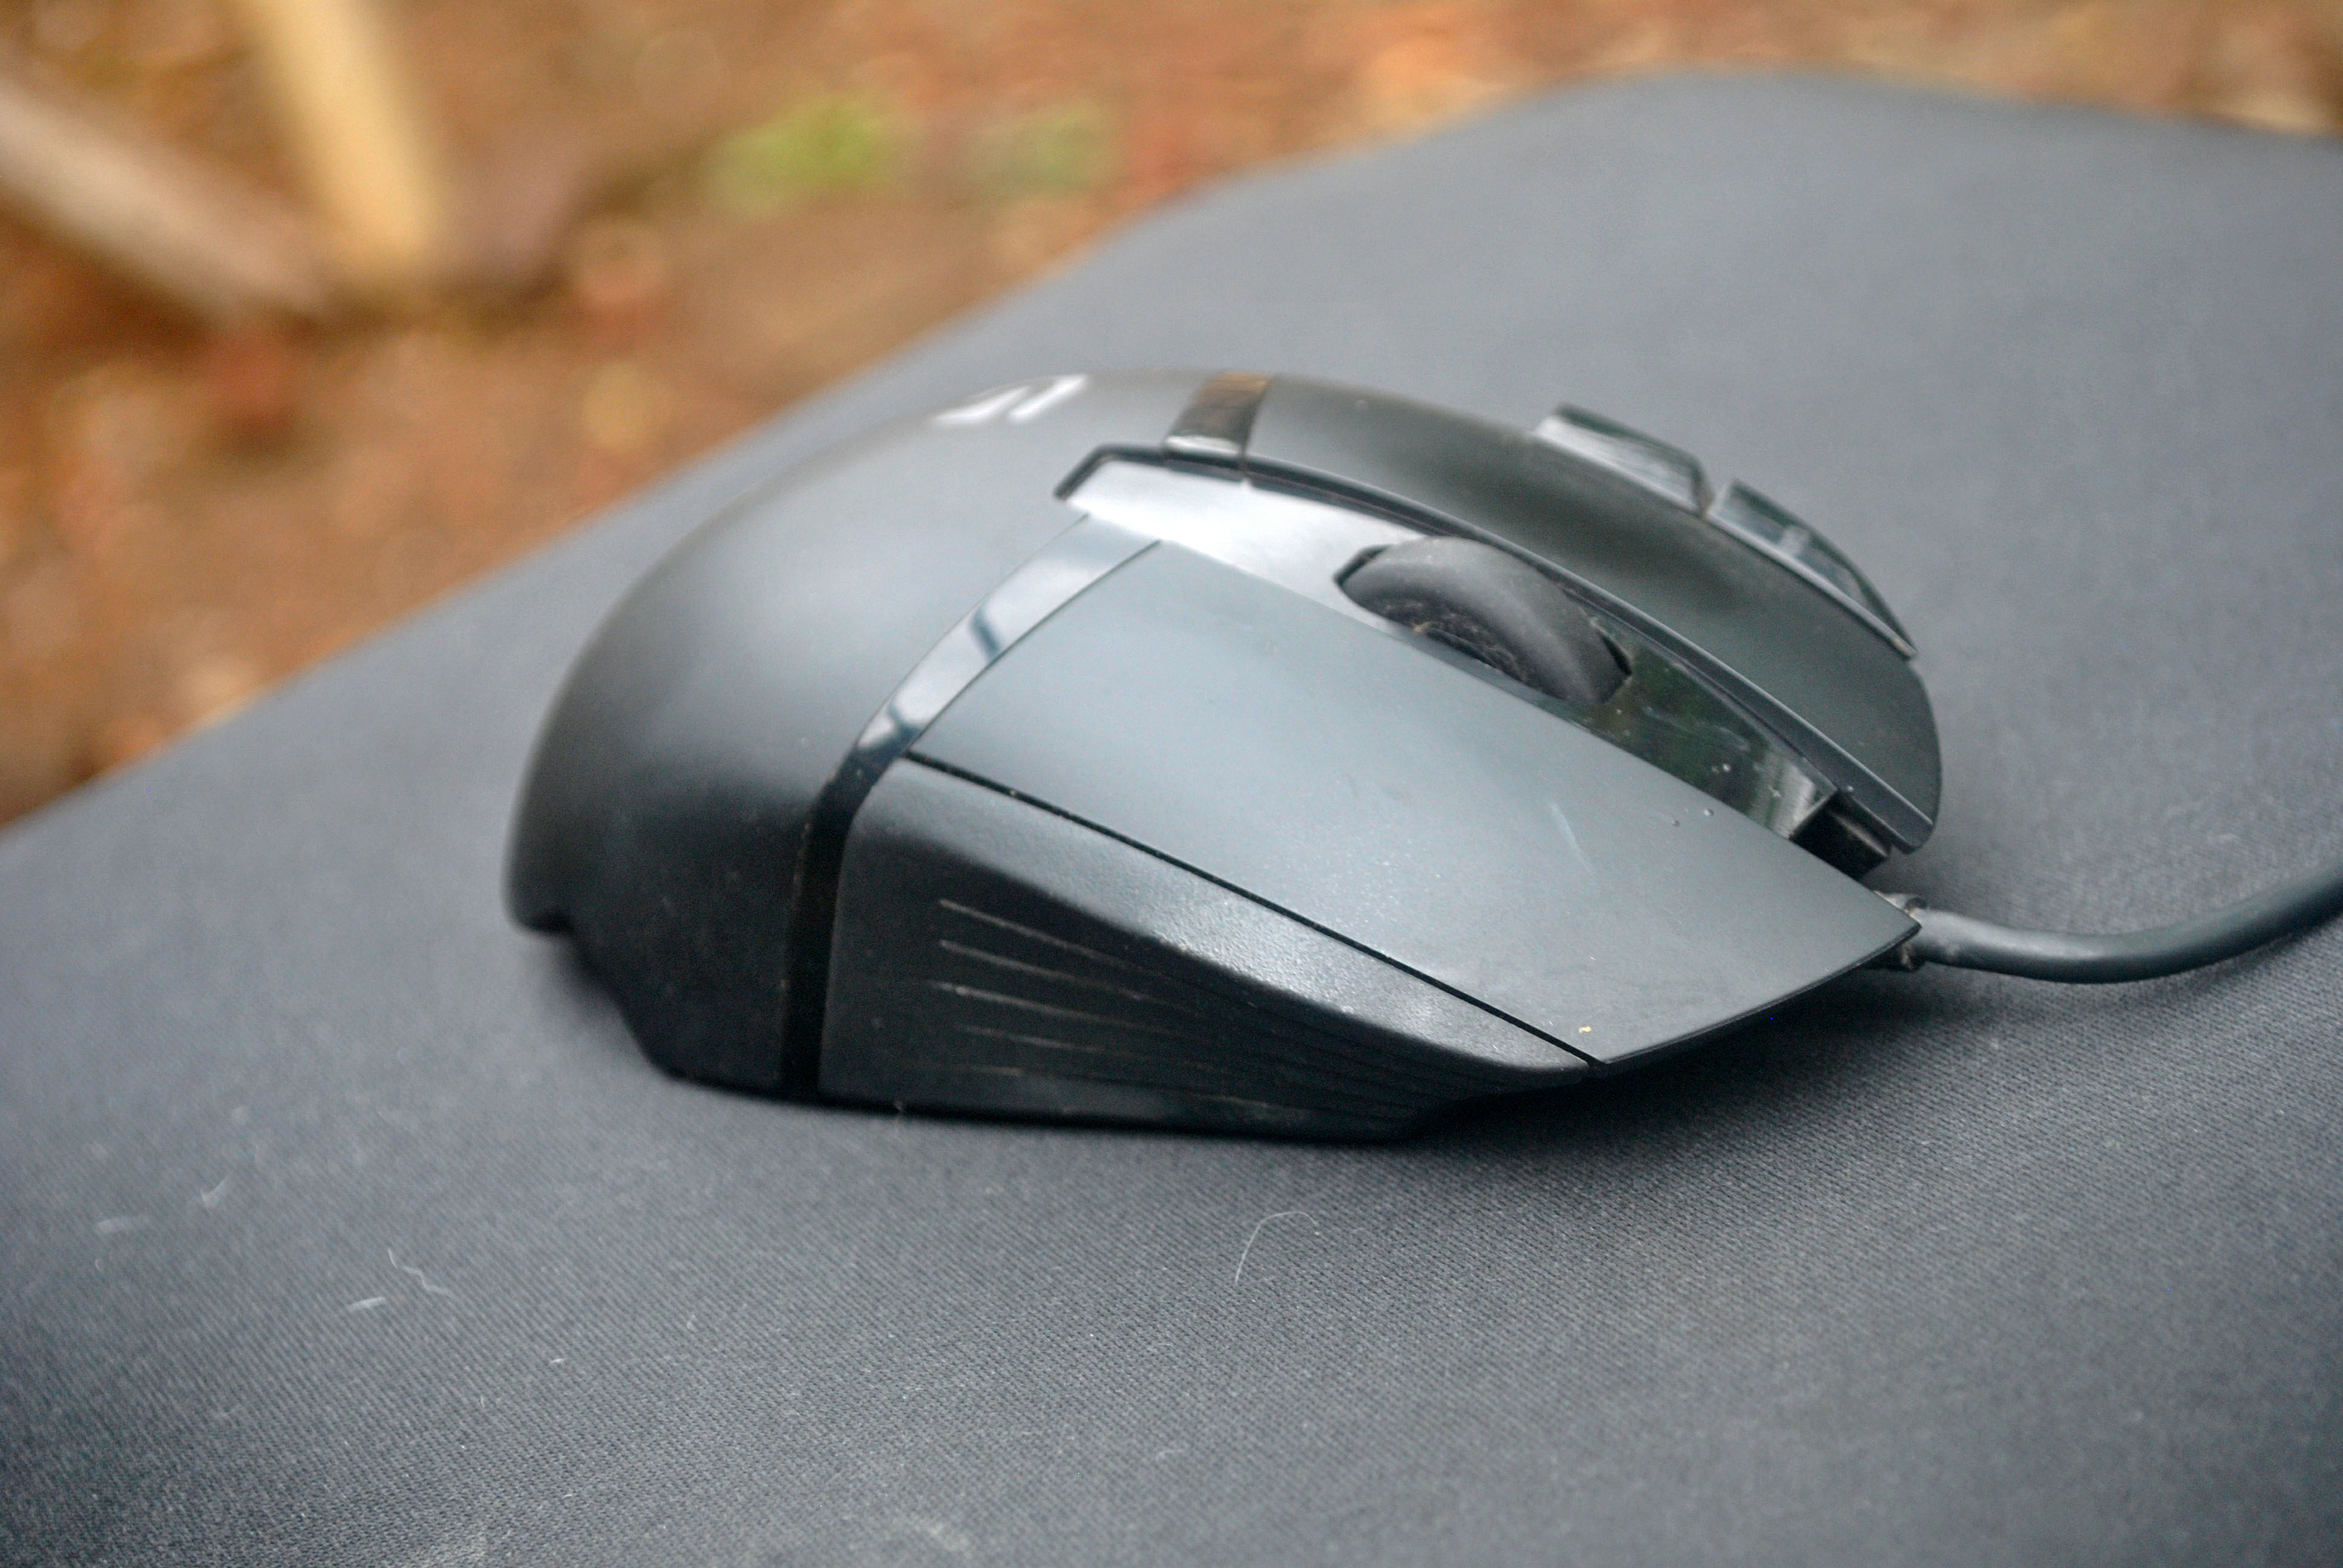 Logitech G402 Review [OLD but still POPULAR why?] - Member